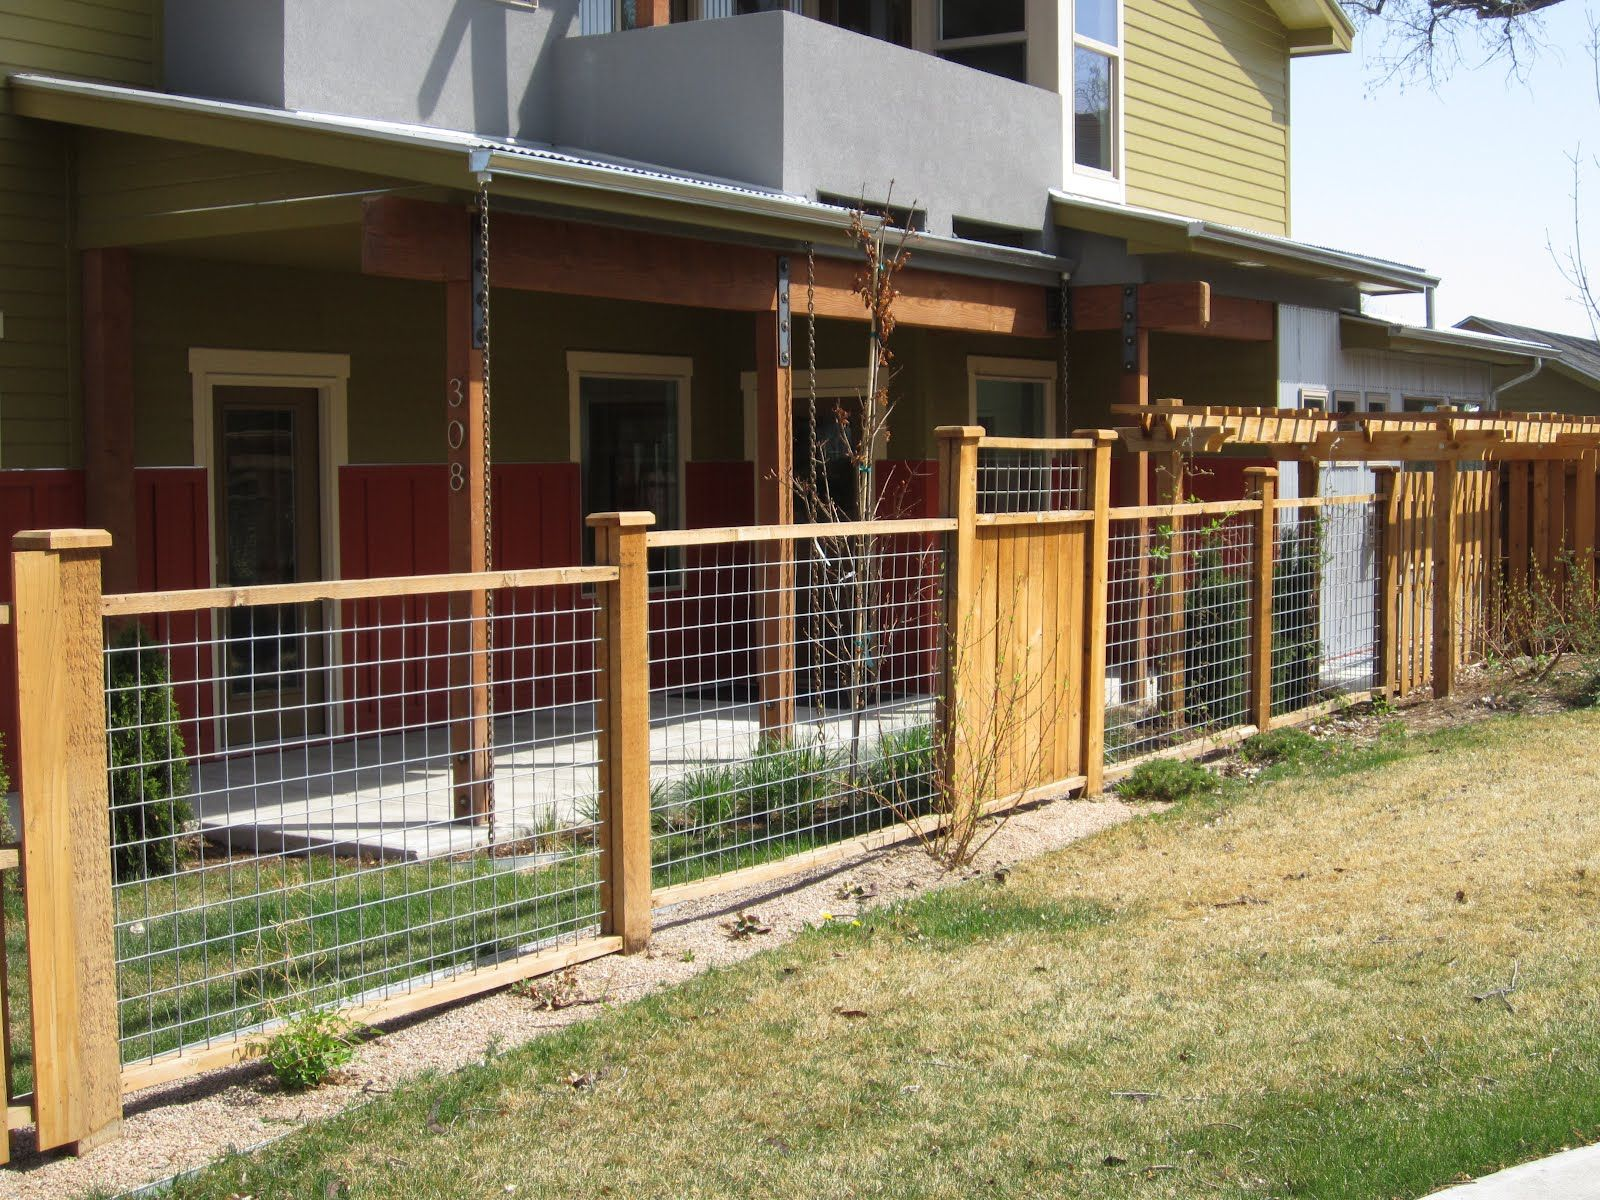 Front Yard Fencing Ideas Part - 31: Front Yard Fence Ideas | Mix Of Hog Wire Fencing And Wood Panels.